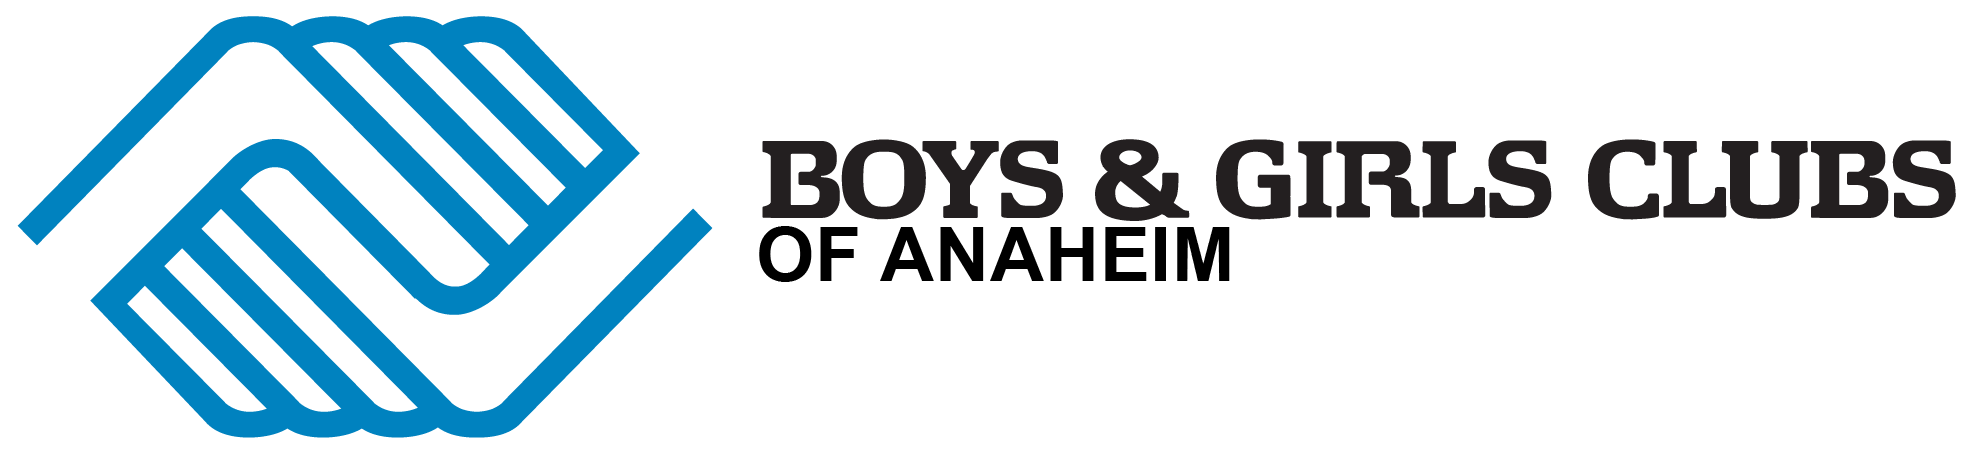 Vertical Black Boys Girls Clubs Of Anaheim Logo PNG High Resolution Image With Transparent Background The And